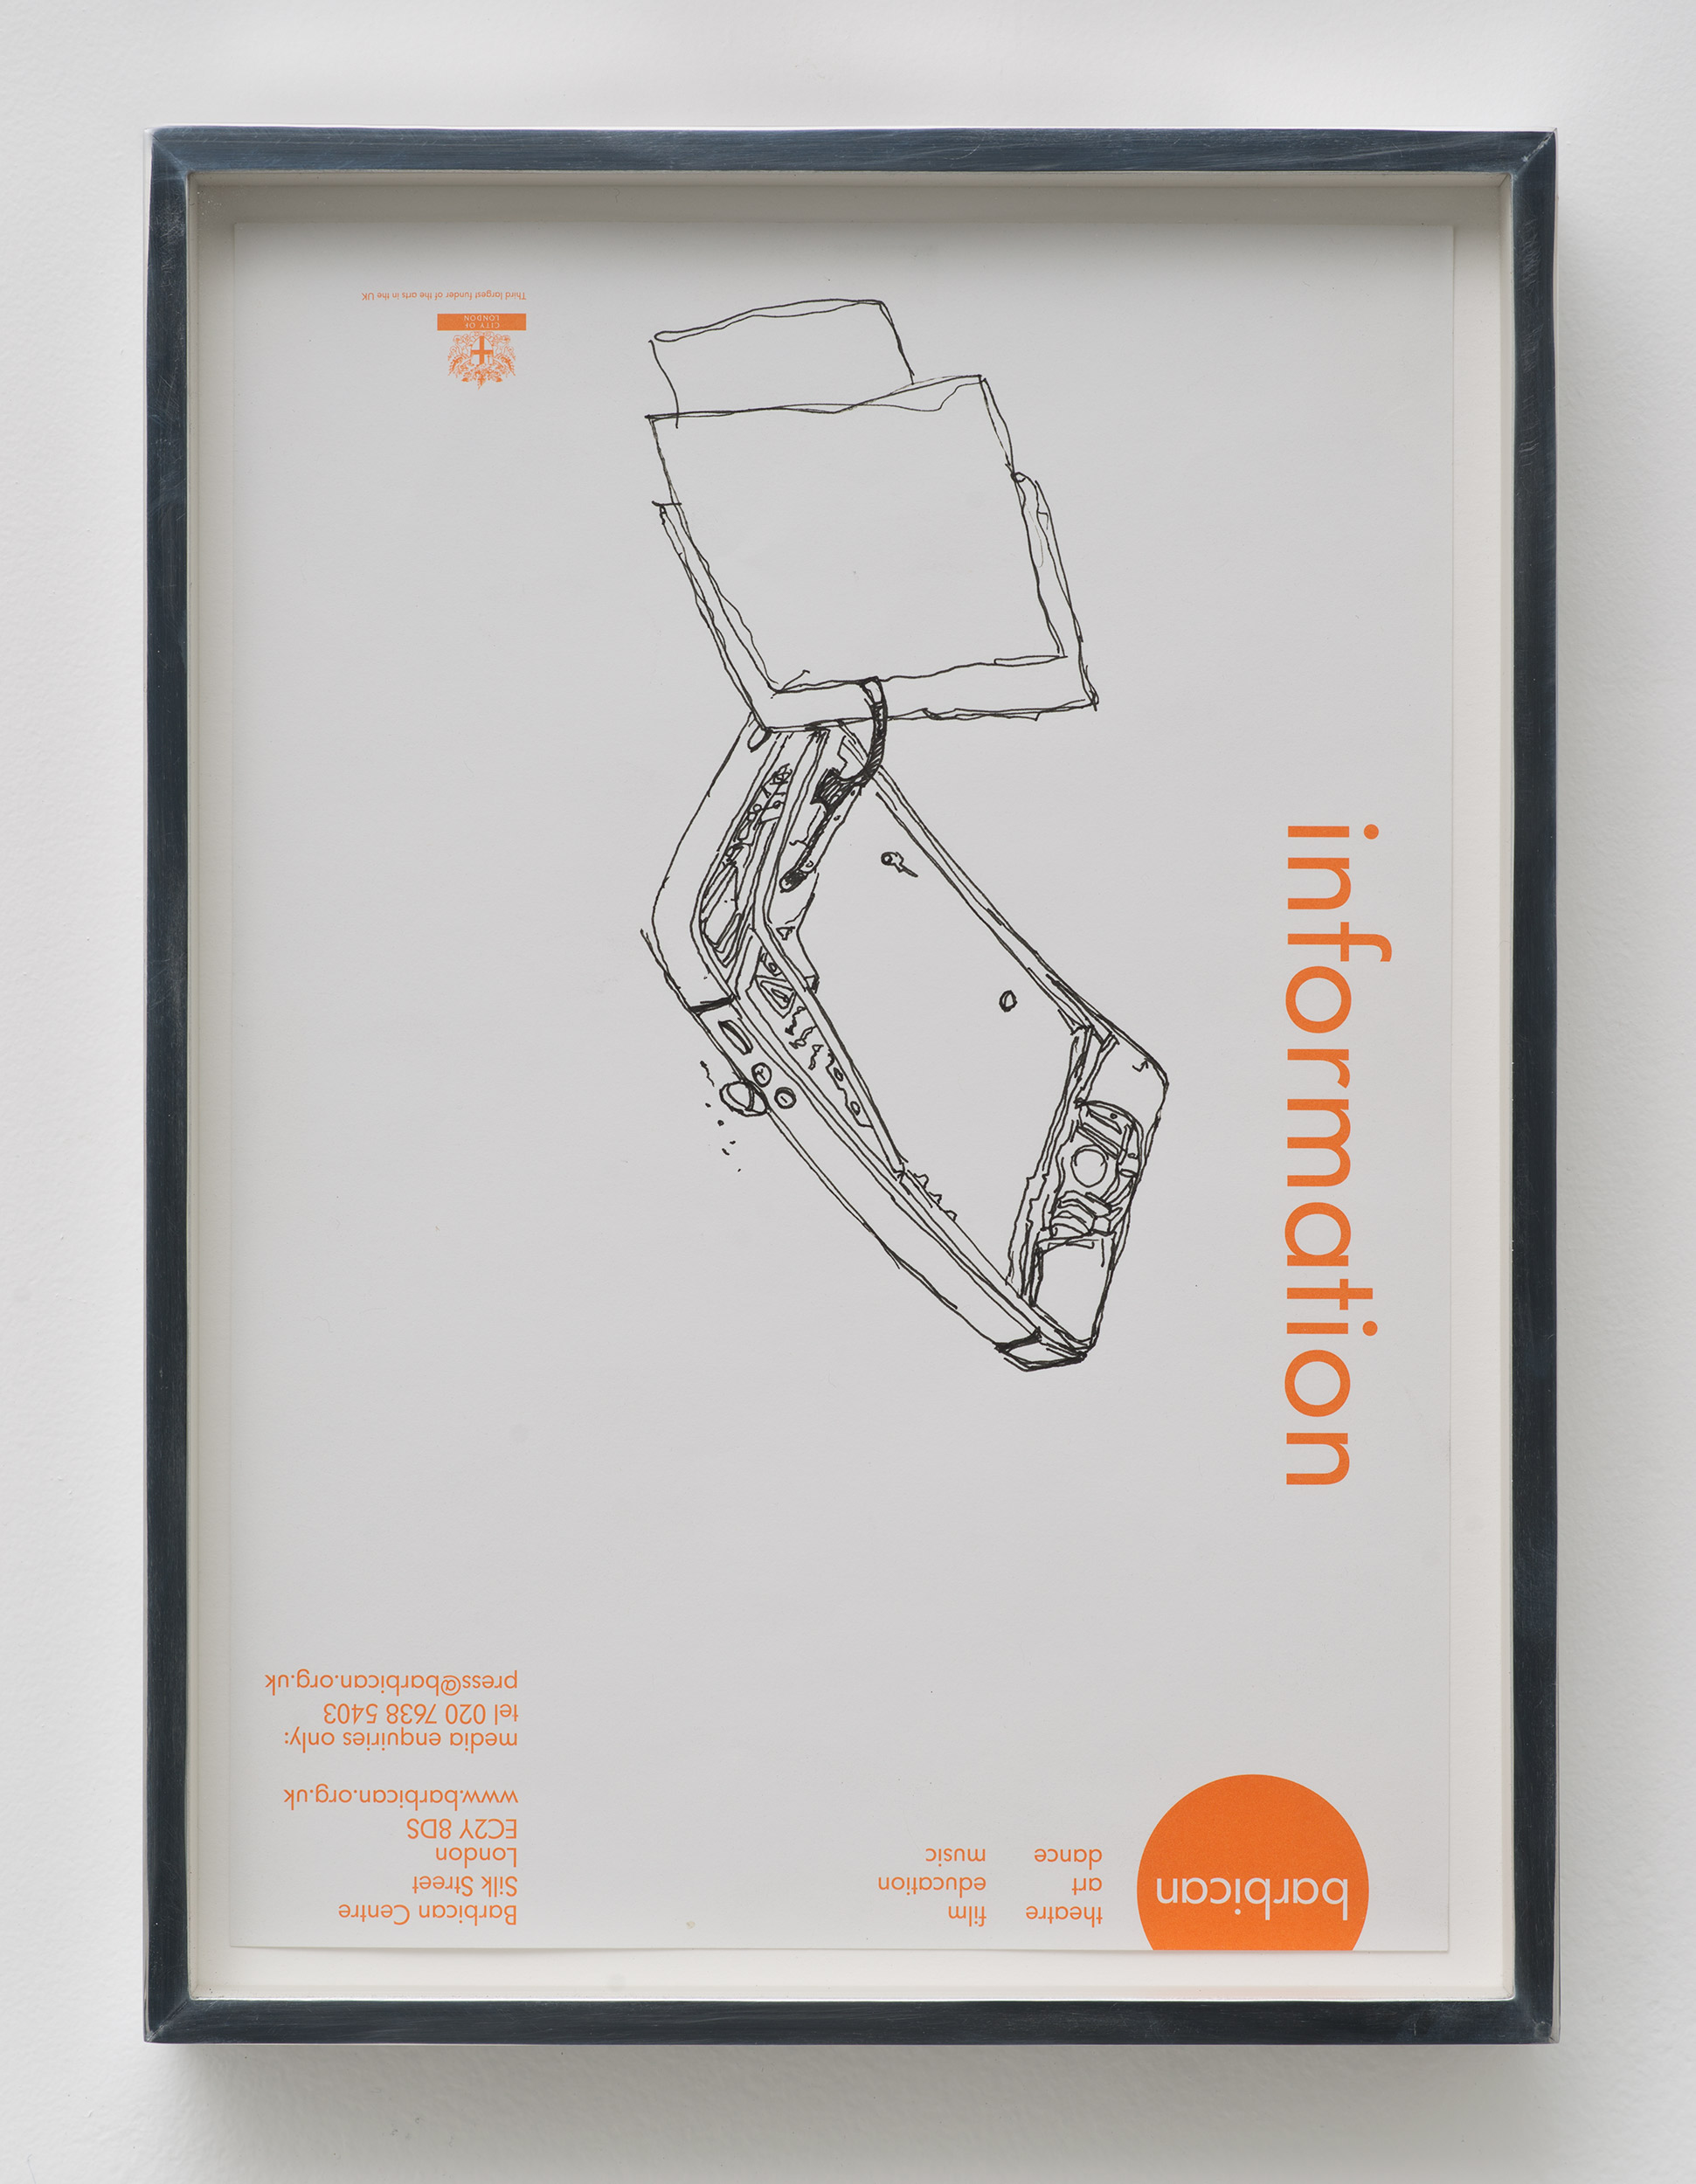 iPhone 5 A1429: Barbican Centre, London, United Kingdom, October 6, 2014    2015   Ink on letterhead  12 7/8 x  9 1/2 inches   Drawings, 2014–